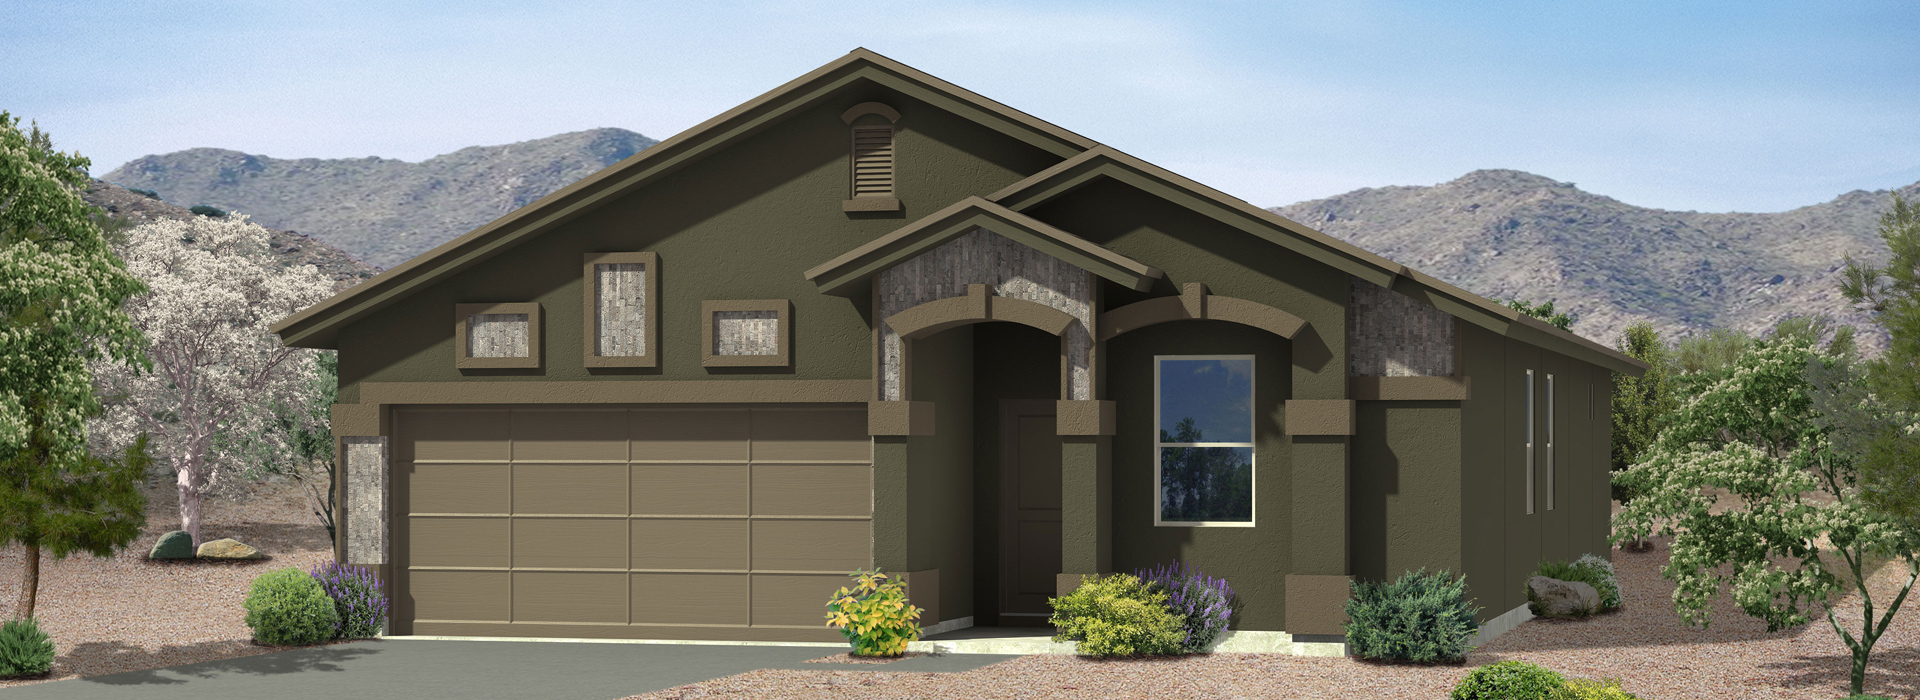 The Belize Model by CareFree Homes